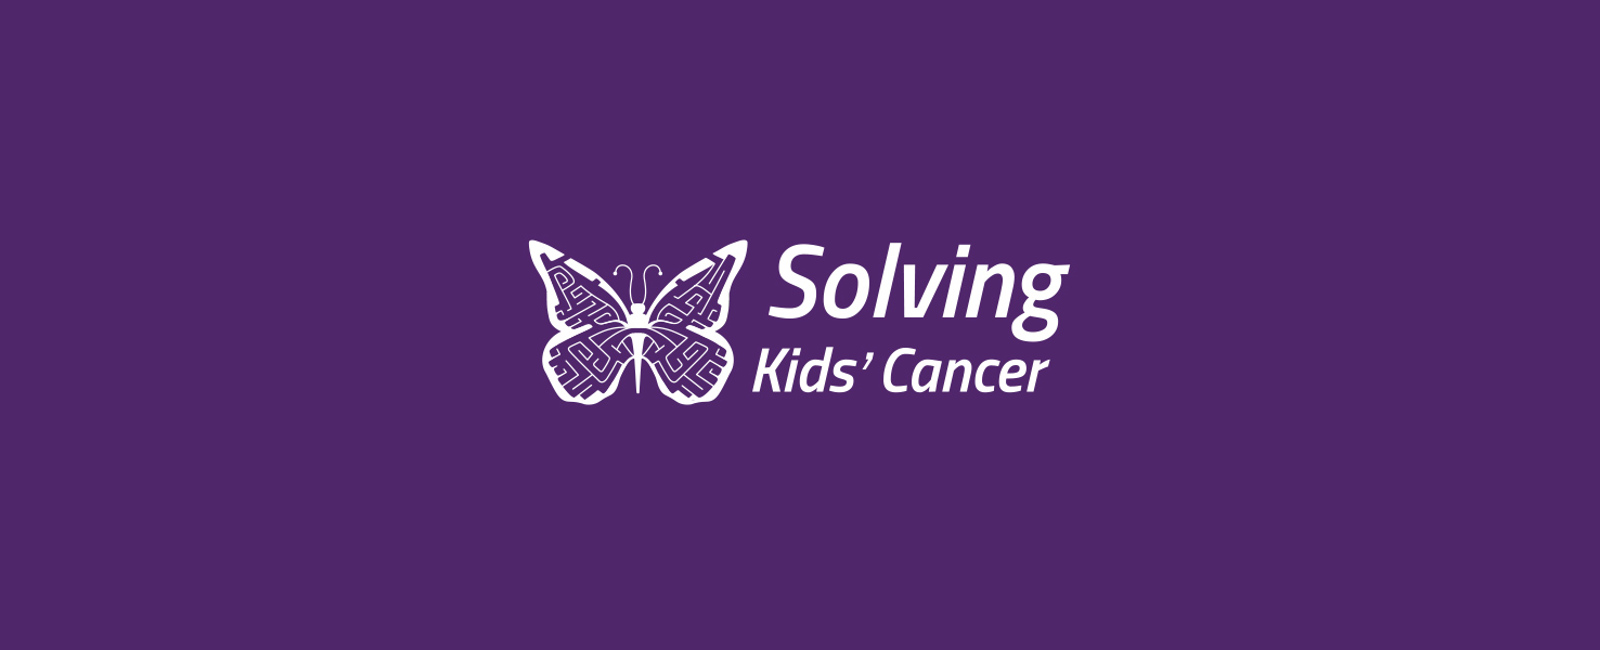 Solving Kids' Cancer's Support for DIPG Community Petition